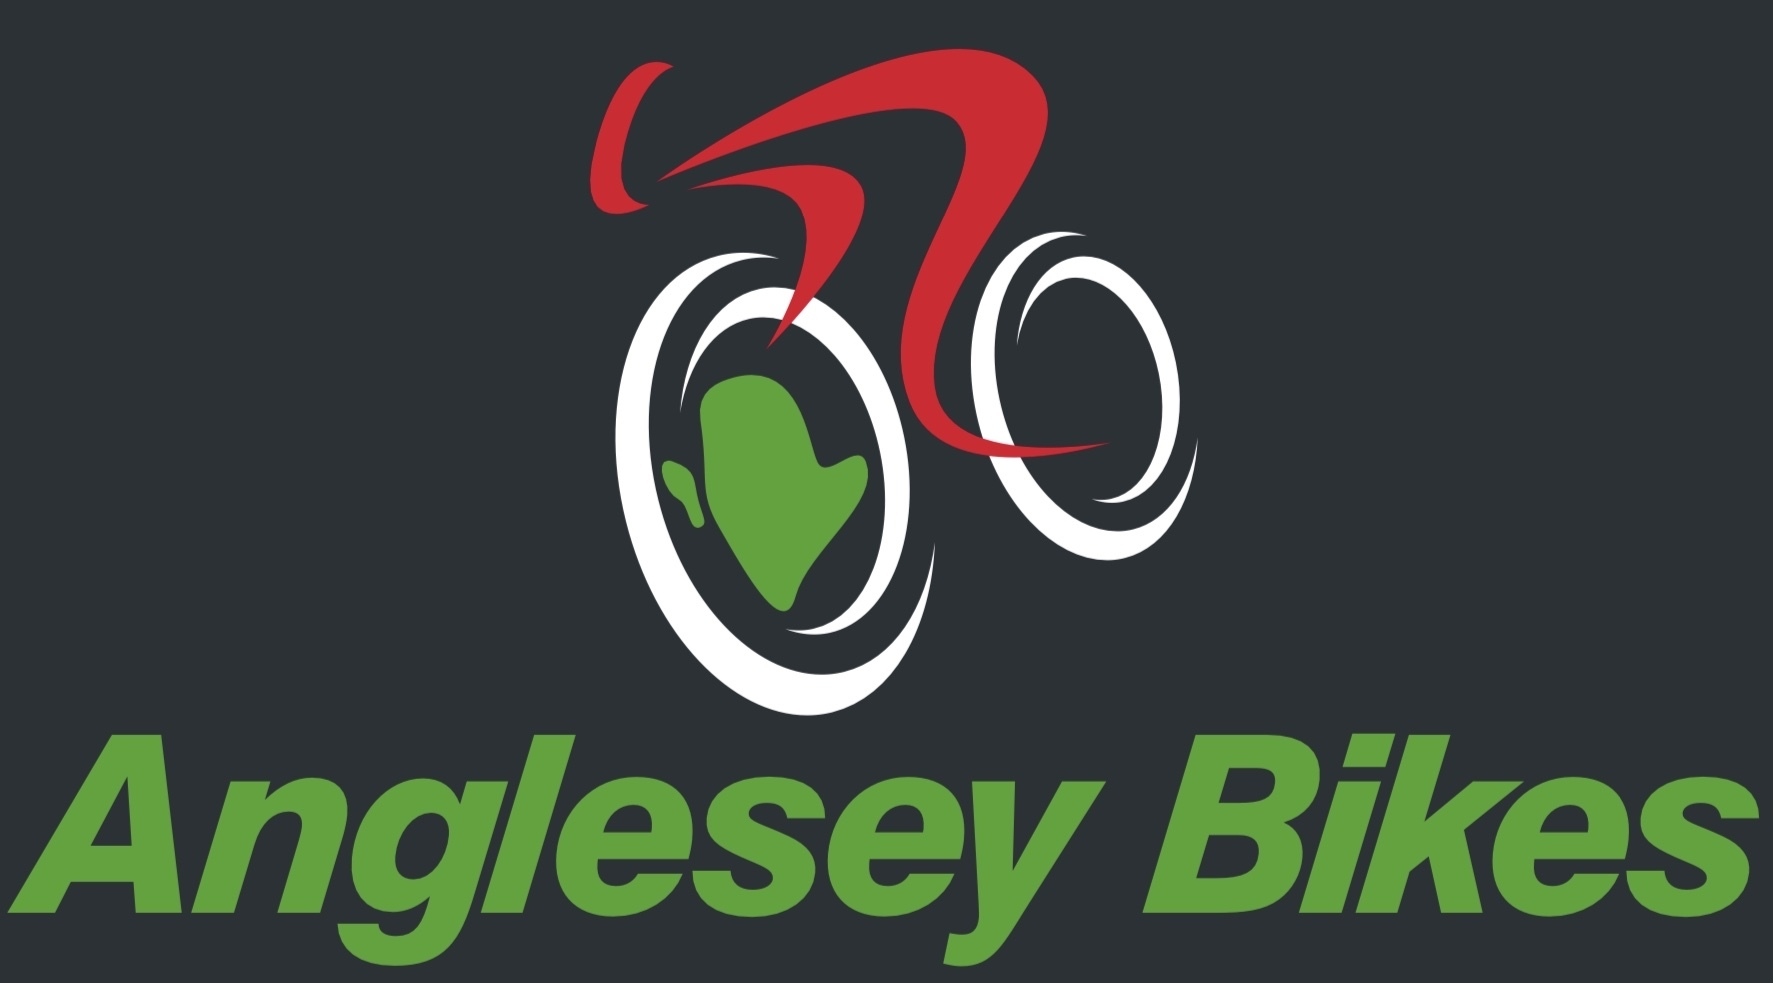 Anglesey Bikes